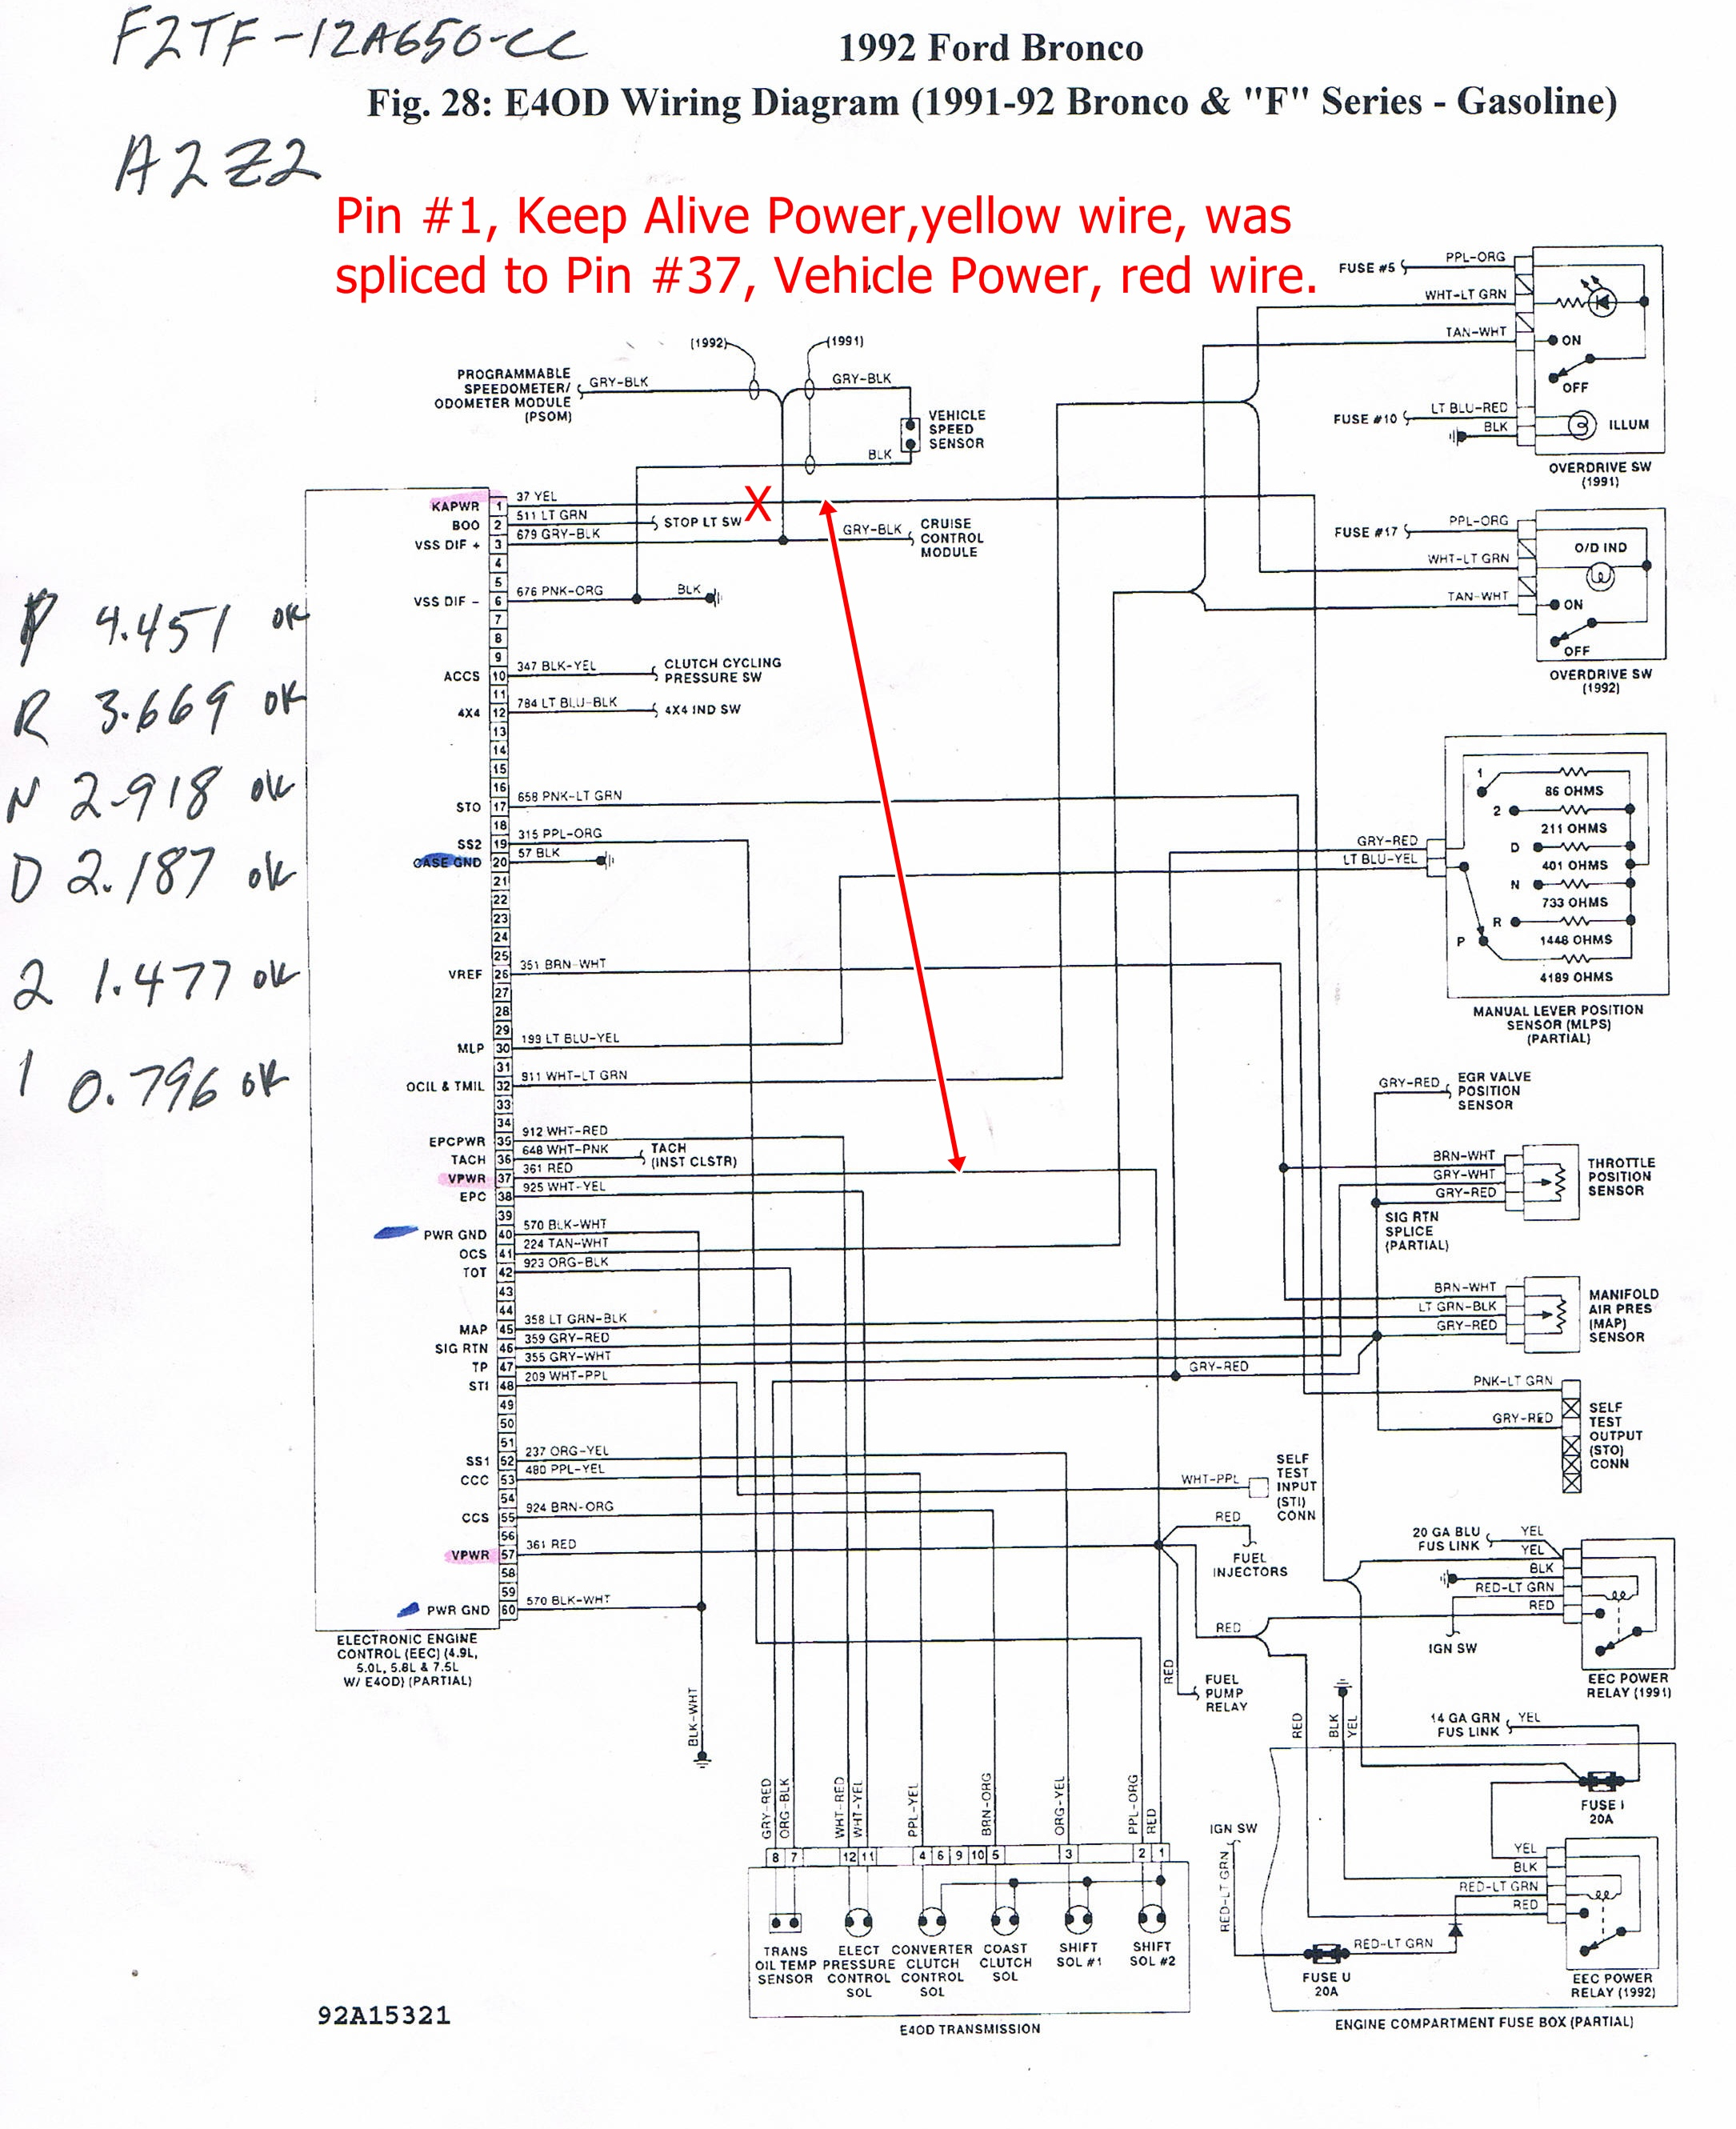 P 0996b43f803827e6 together with 01 together with CHRYSLER Car Radio Wiring Connector together with 612914 Wire Diagrams besides 2015 Gla Class. on santa fe hyundai 2004 door wiring diagram